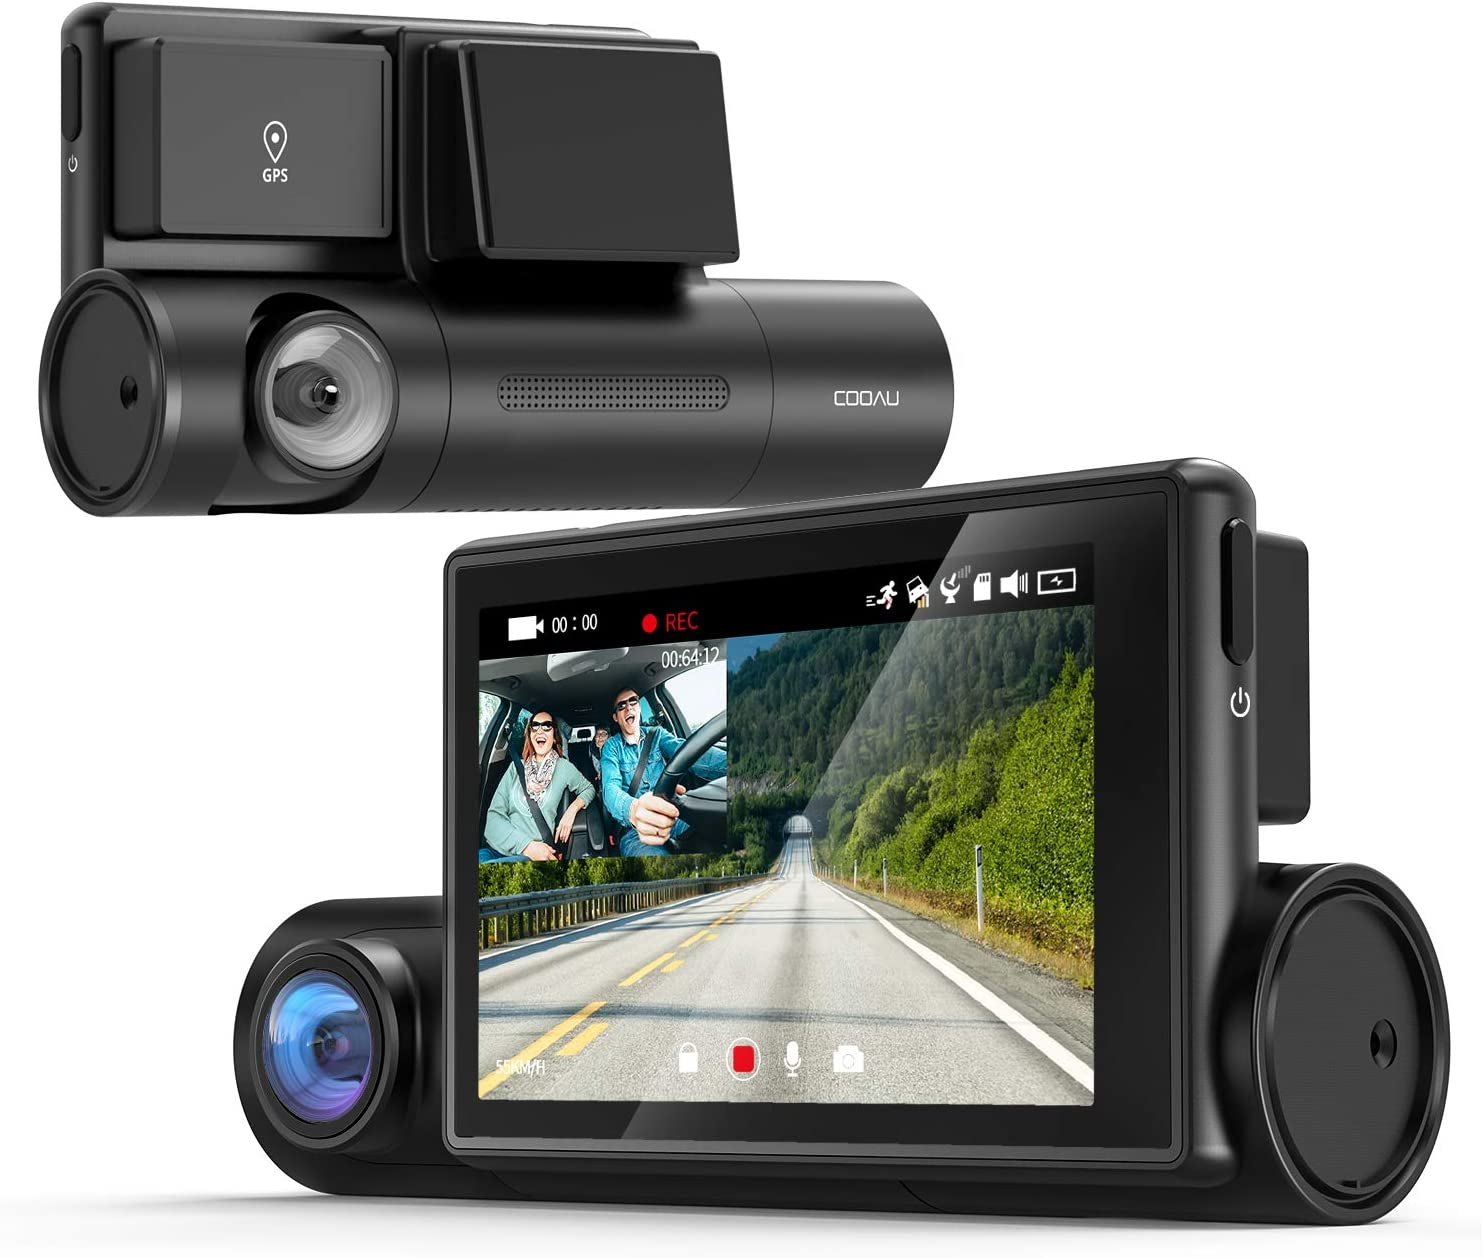 "COOAU Dual 1080P Dash Cam with GPS and Wi-Fi, 3"" OLED Touch Screen,Sony STARVIS Night Vision, Front and Inside in Car DVR Camera, Parking Mode, Support 128GB Card"